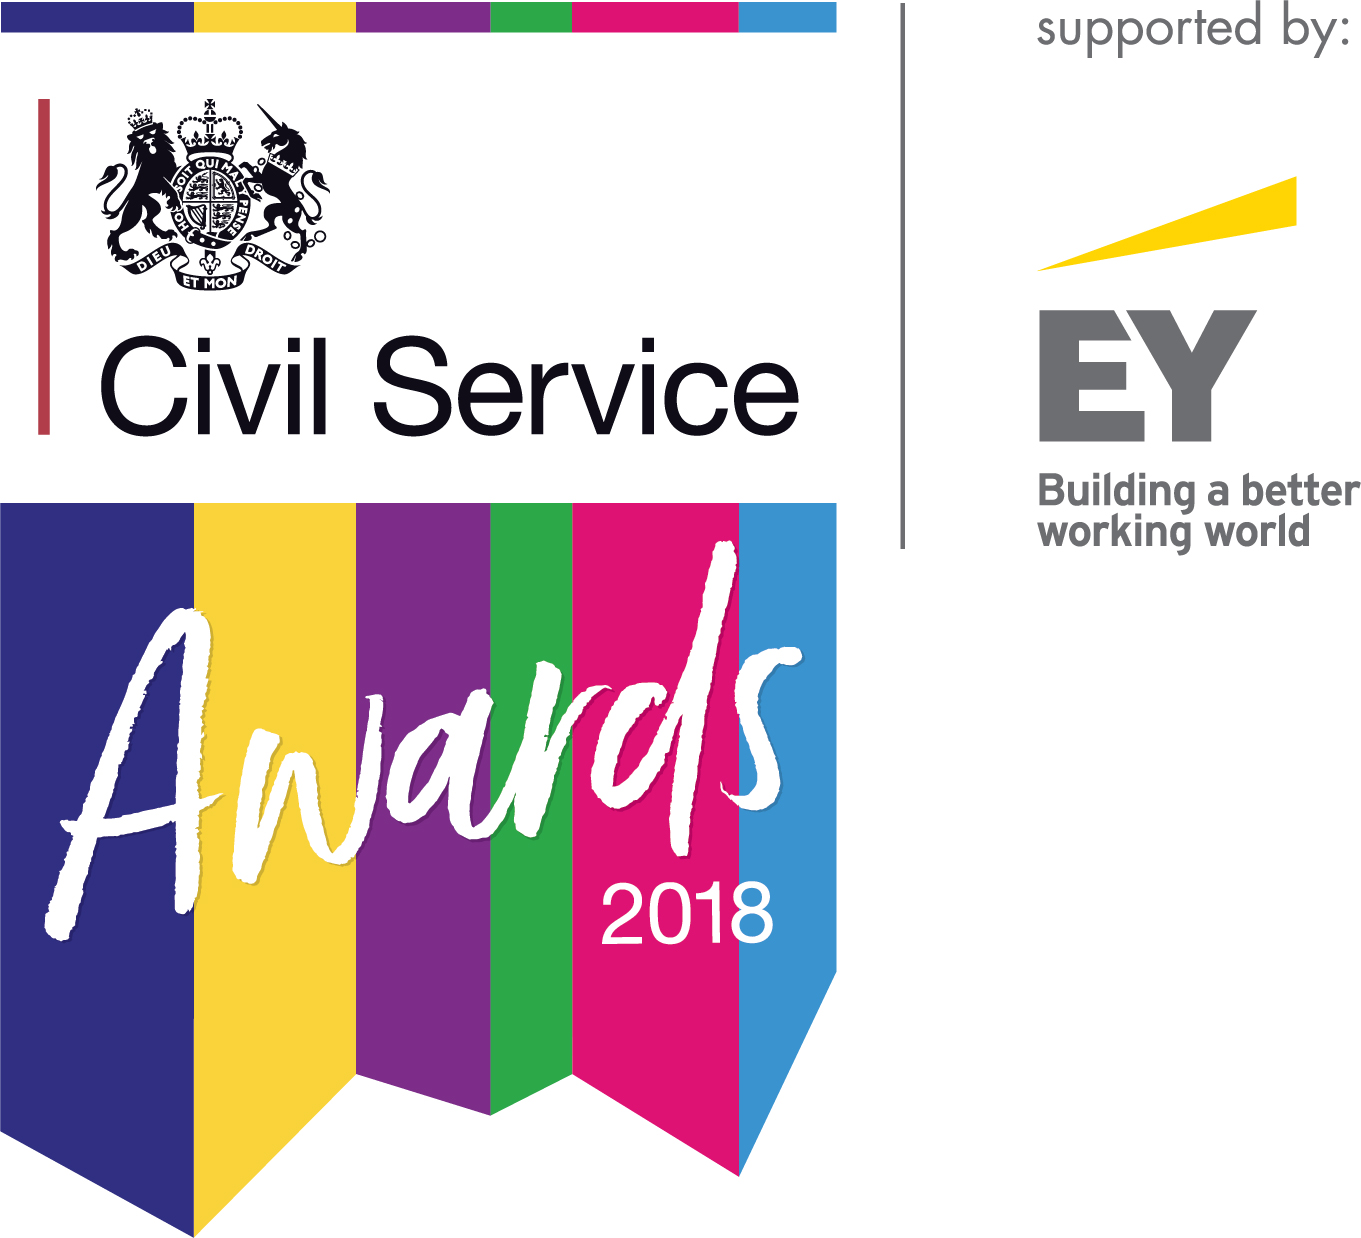 Civil Service Awards 2018 logo